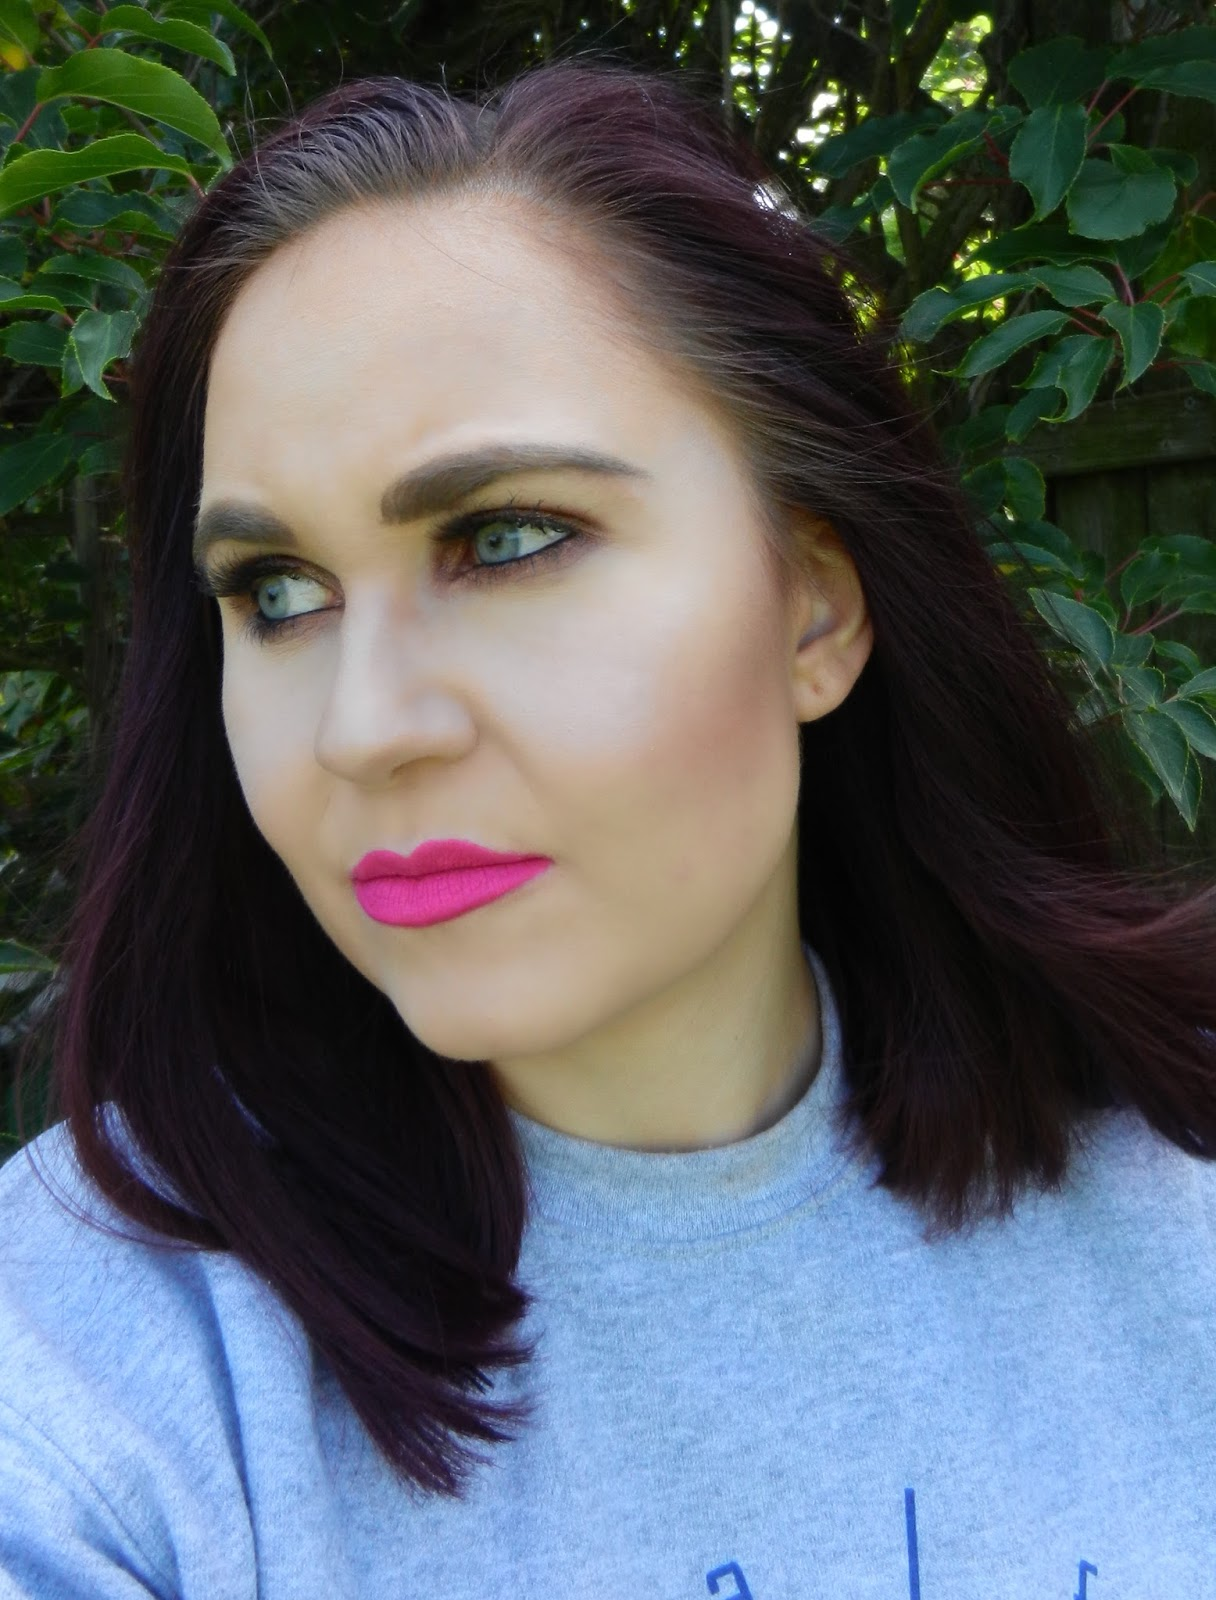 Bronzy eye makeup feat. bold pink lips